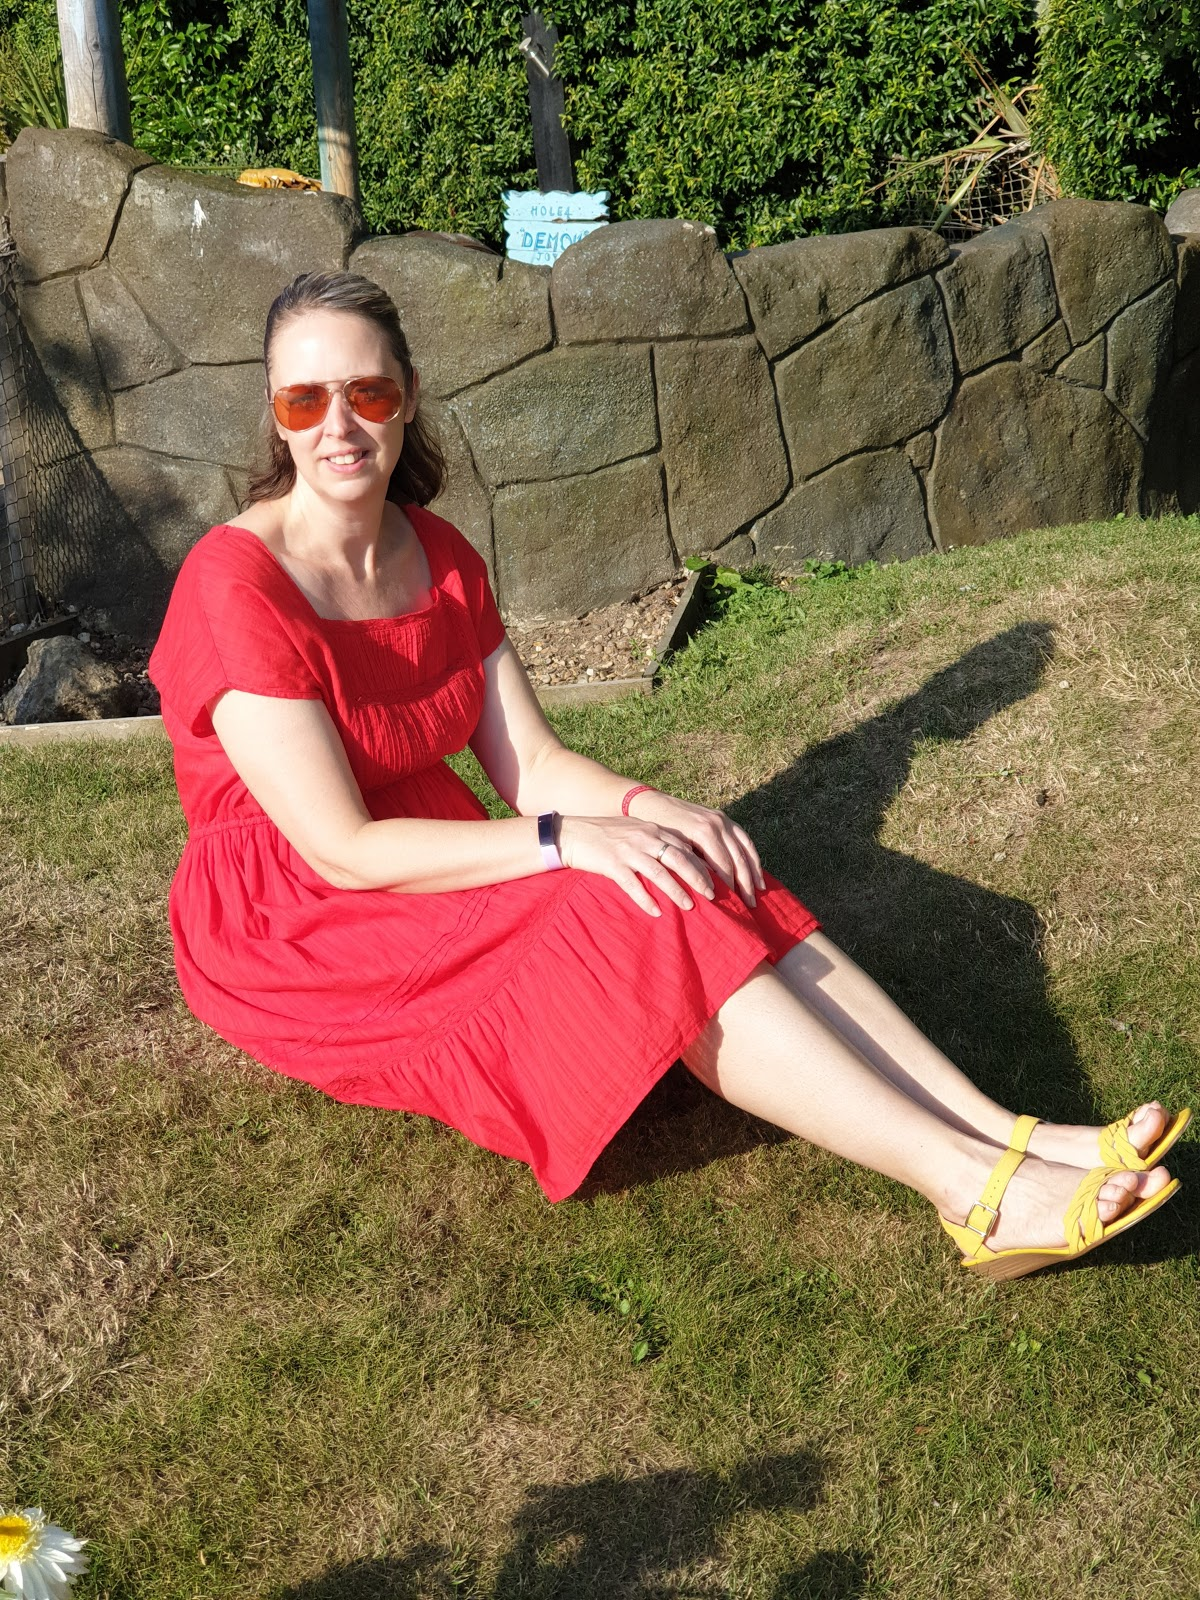 Lady In Red: Red Summer Dress With Yellow Sandals